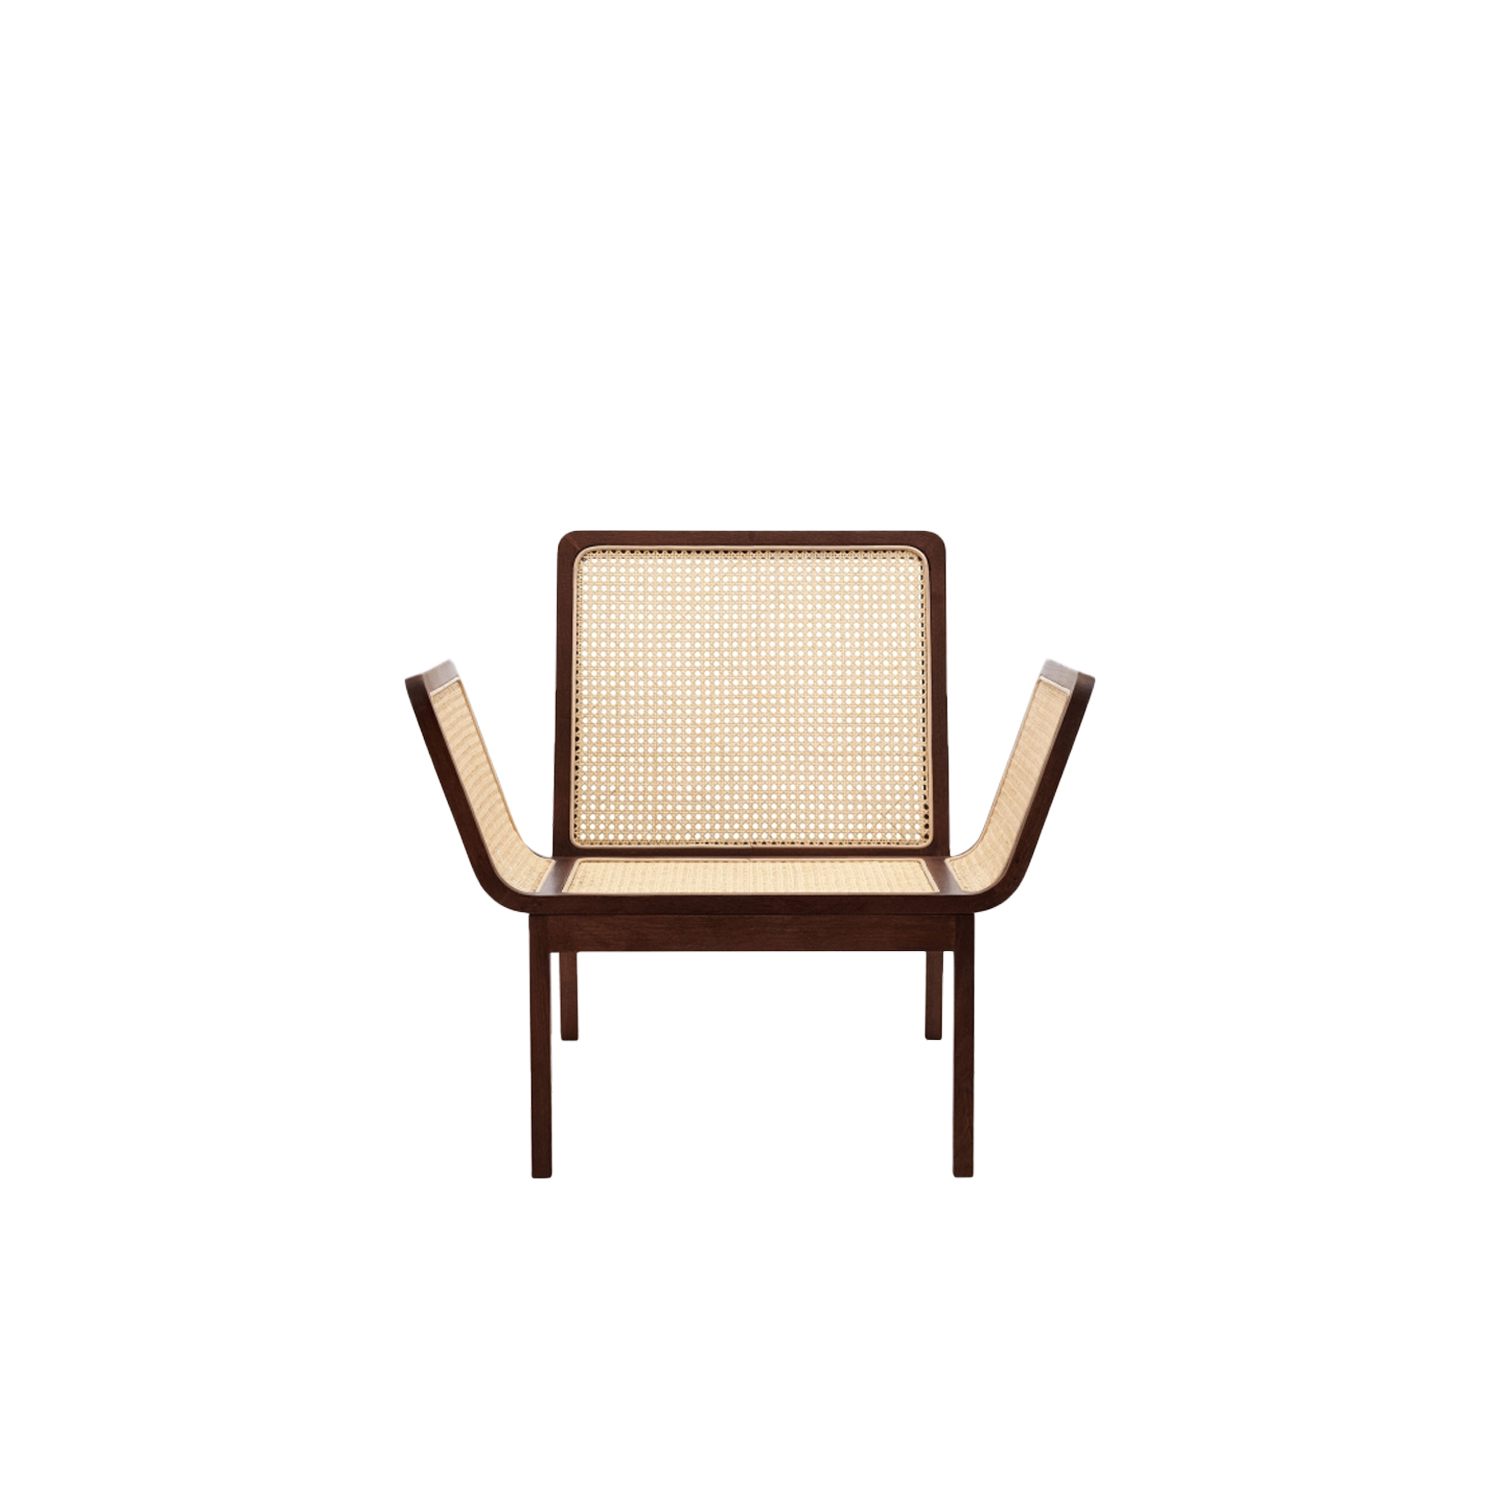 Le Roi Lounge Chair - Le Roi Lounge Chair is made from solid oak with inlaid French rattan. The collection is a minimalistic interpretation of rattan furniture from the French colonial period, merged with well known Scandinavian furniture archetypes. The tactile French rattan creates a translucent surface highlighting the beauty of a simple wooden construction.  The Le Roi Chair comes in Natural and Dark Stained oak with or without a loose seat cushion for extra comfort. | Matter of Stuff